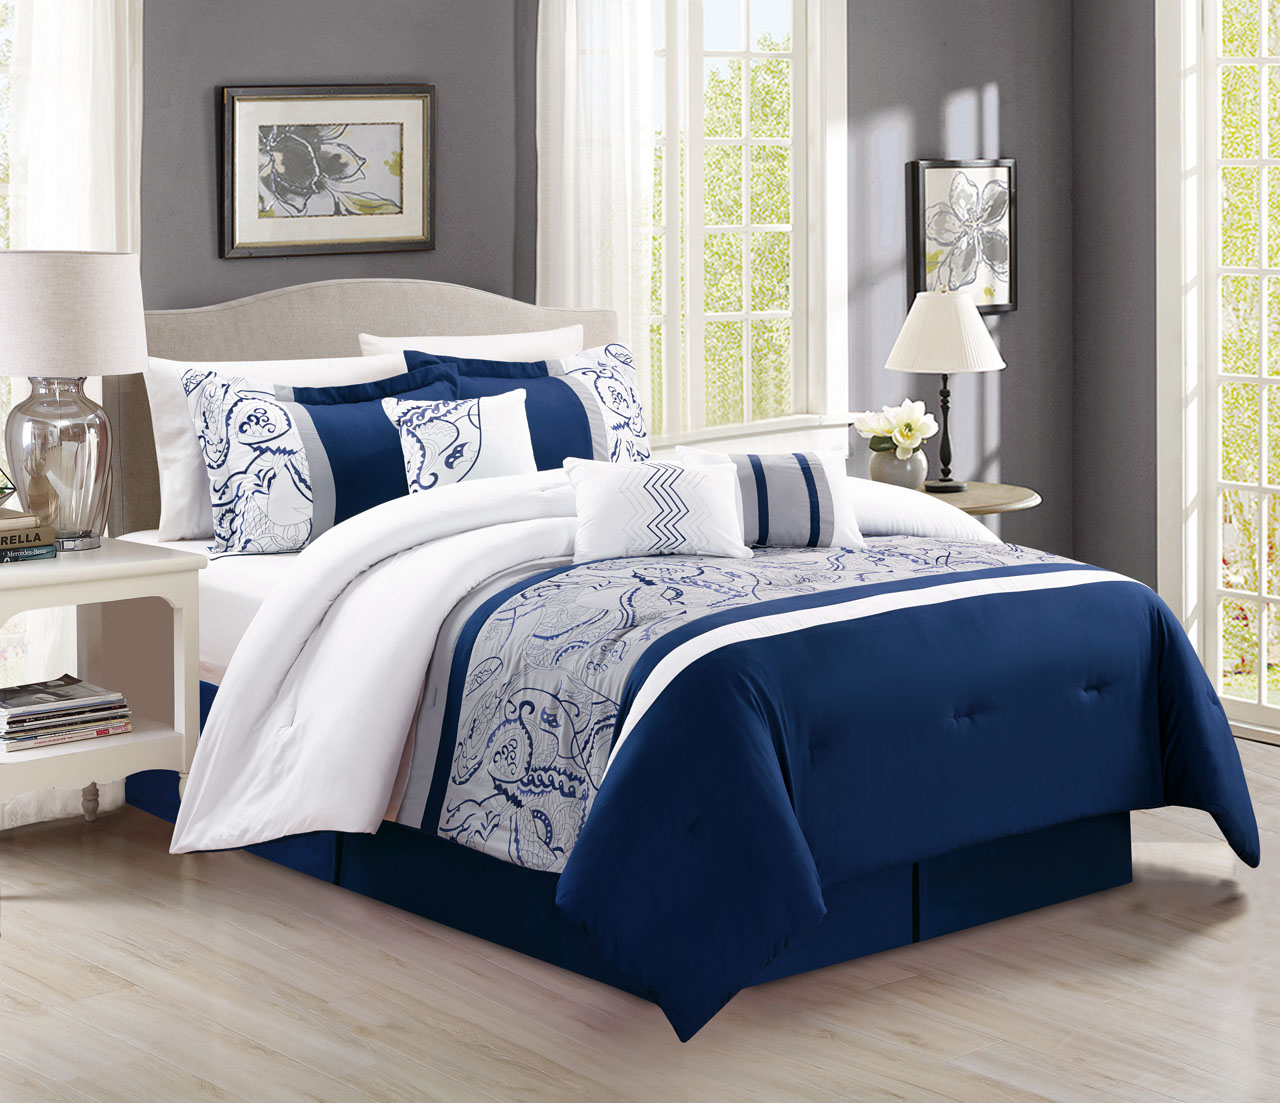 Navy blue and tan bedding - Target Comforter Navy Blue Comforter Lavender Bedding